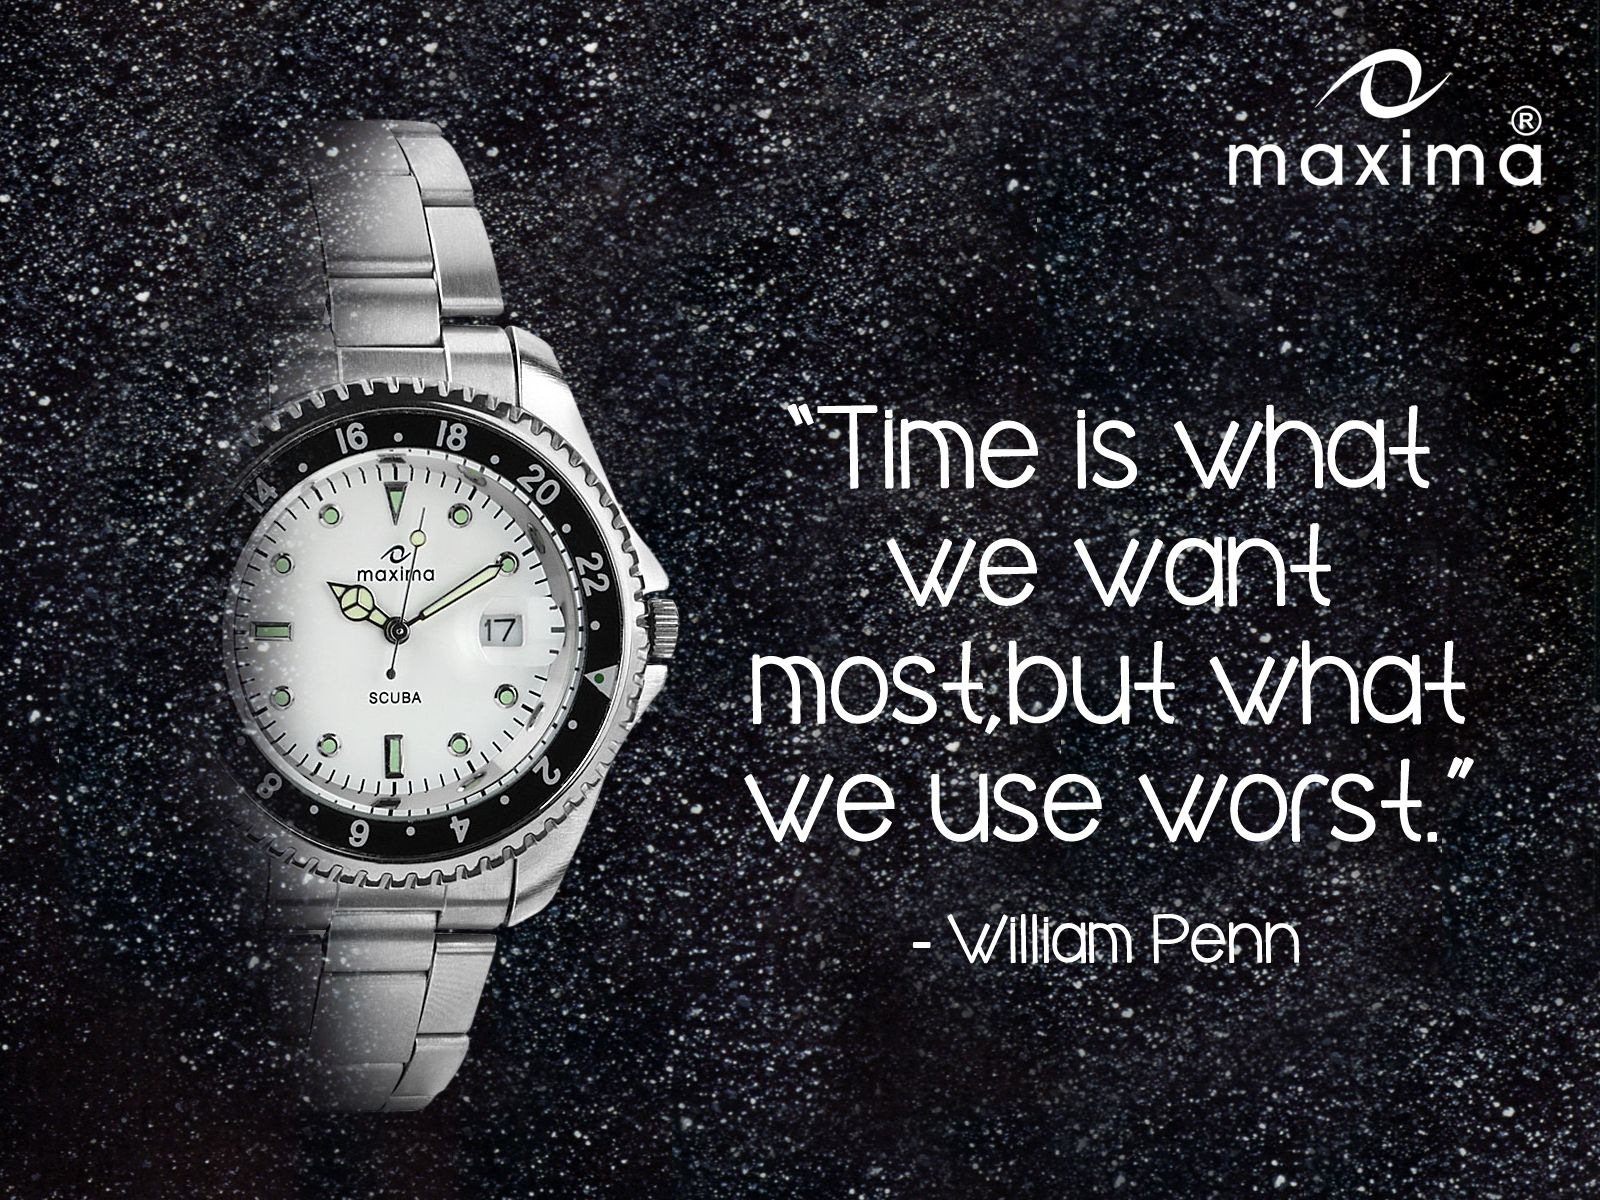 Watch Time Quotes At Quote Of The Day Time Quotes Quotes Time